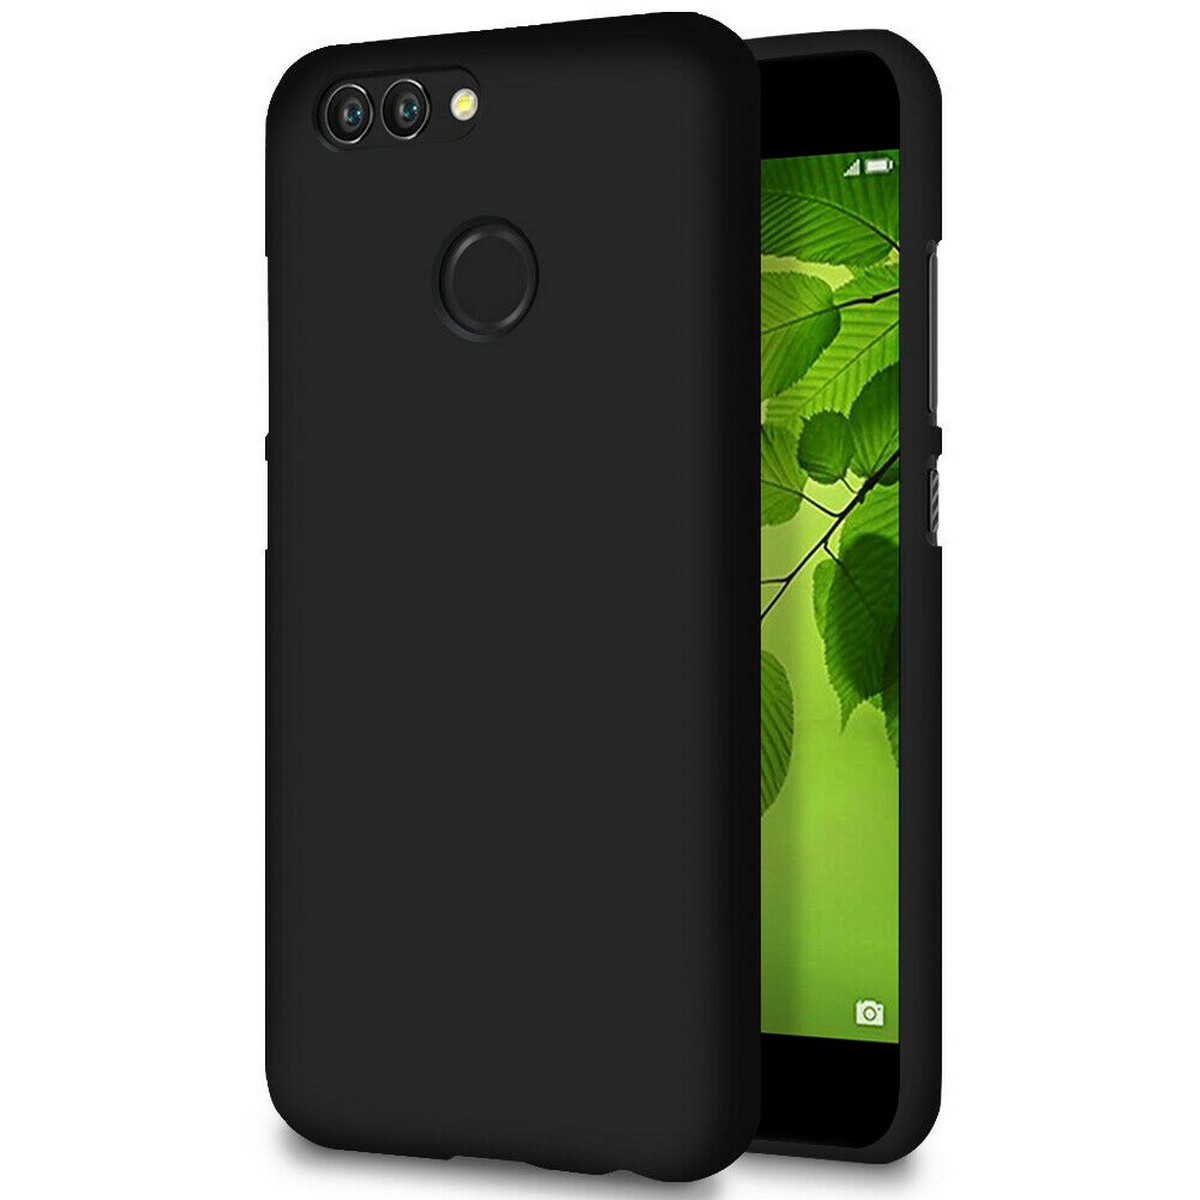 Huawei Nova 2 Airbag Case Anti Shock and Anti-Scratch Resistant Clear View Transparent Silicone Back Cover